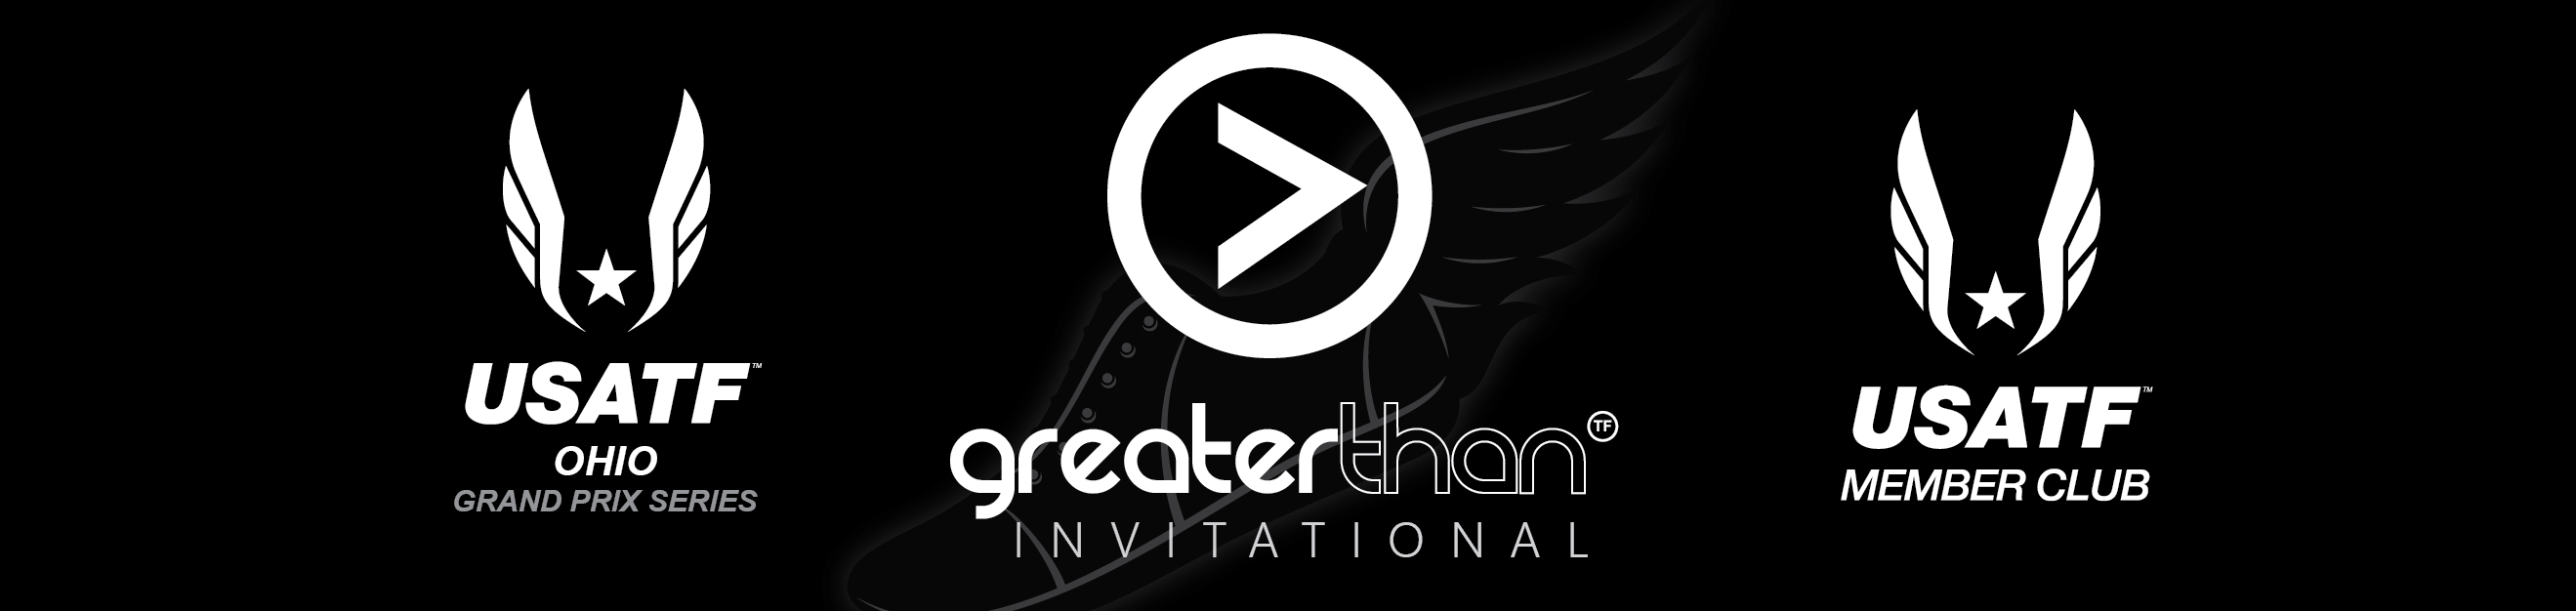 Greater Than Invitational